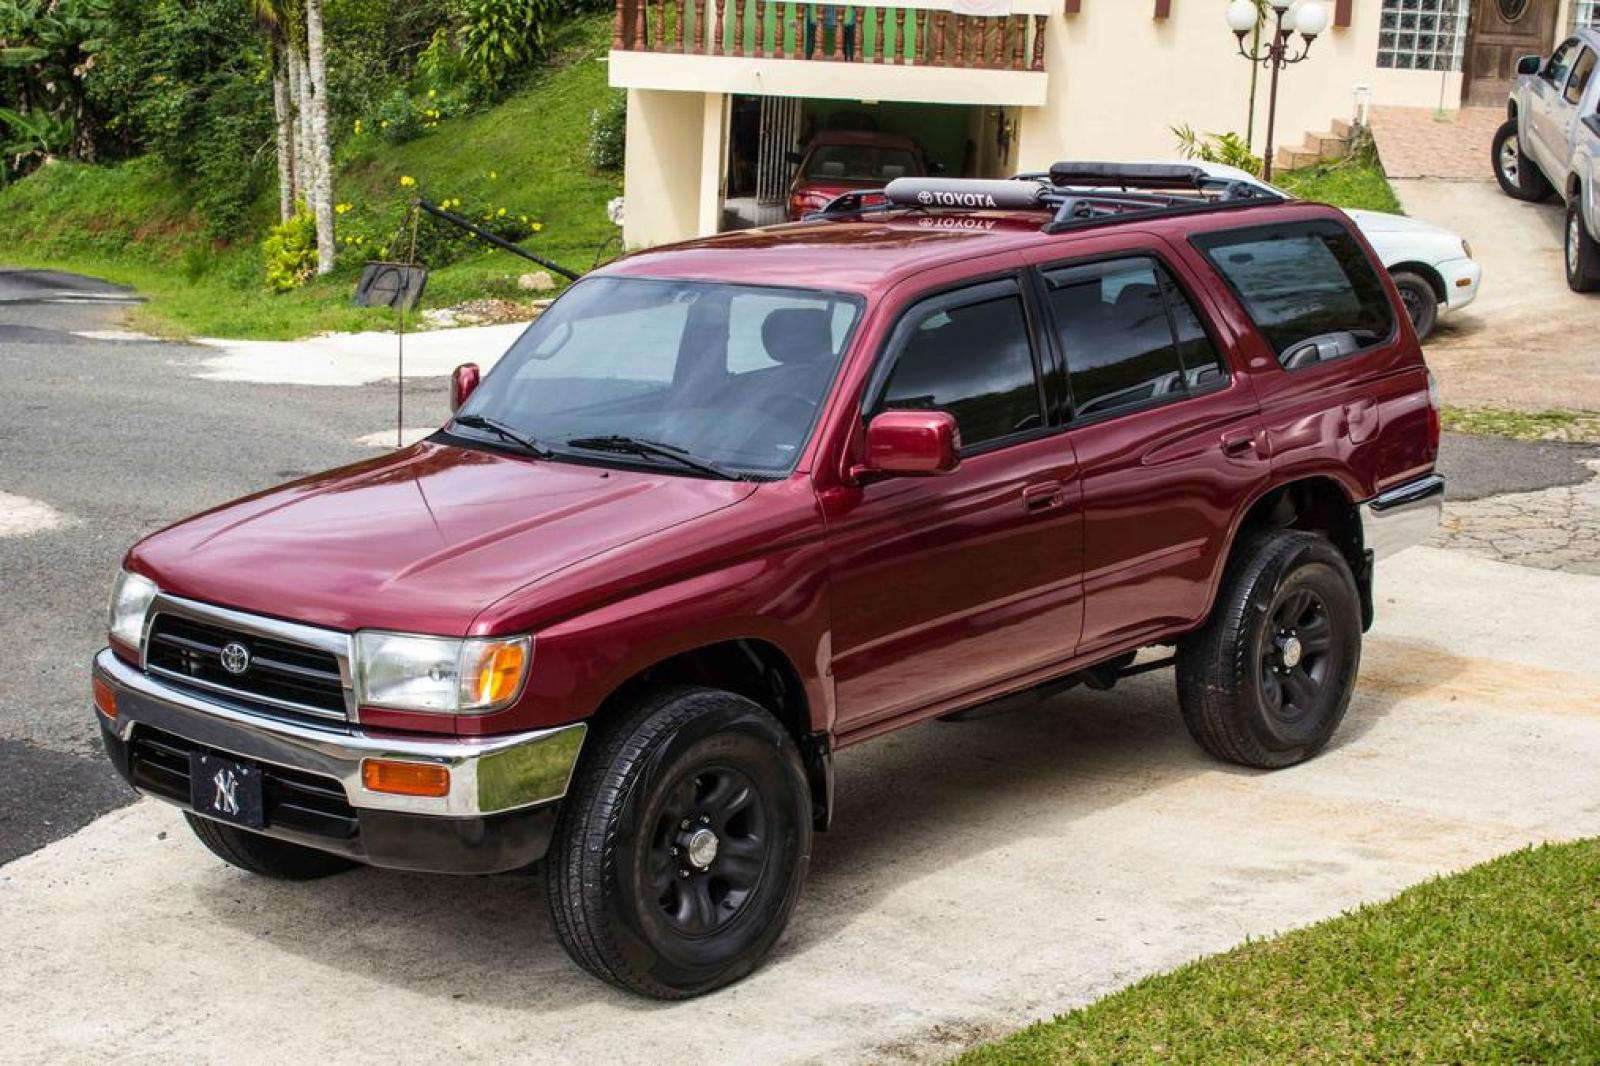 1998 toyota 4runner information and photos zombiedrive. Black Bedroom Furniture Sets. Home Design Ideas